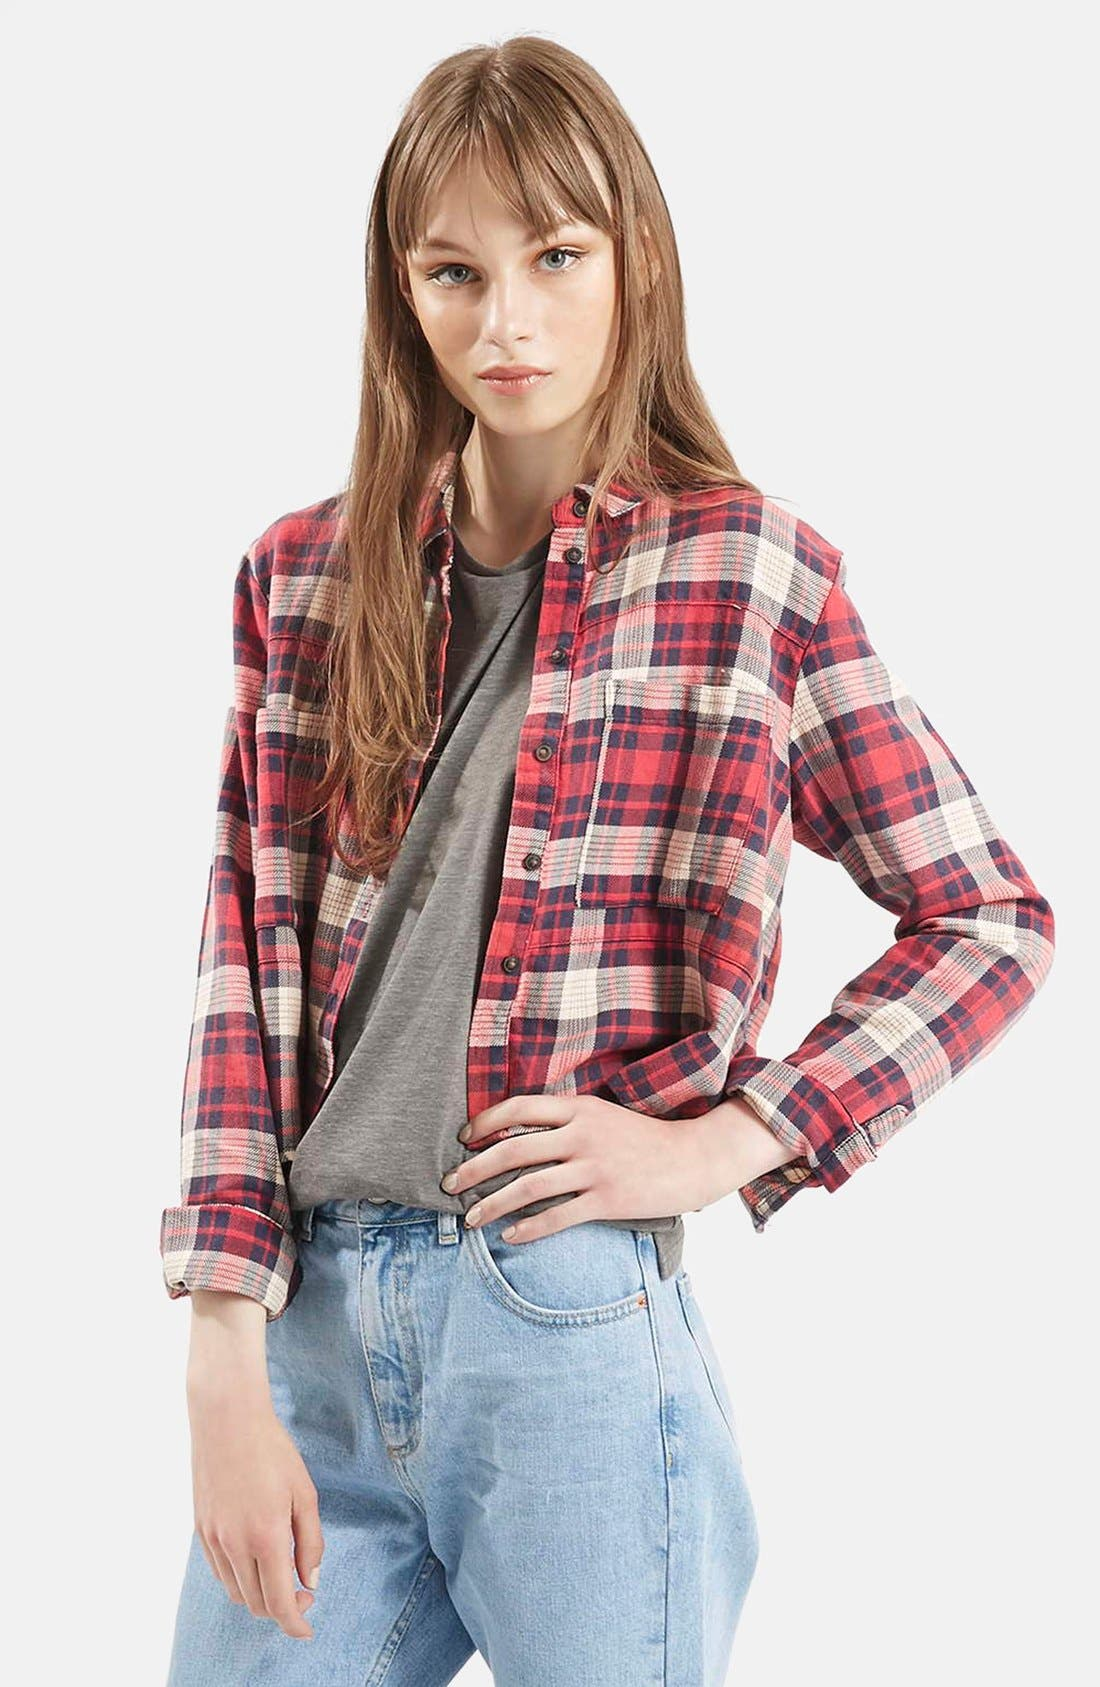 Alternate Image 1 Selected - Topshop 'Chloe' Crop Plaid Shirt